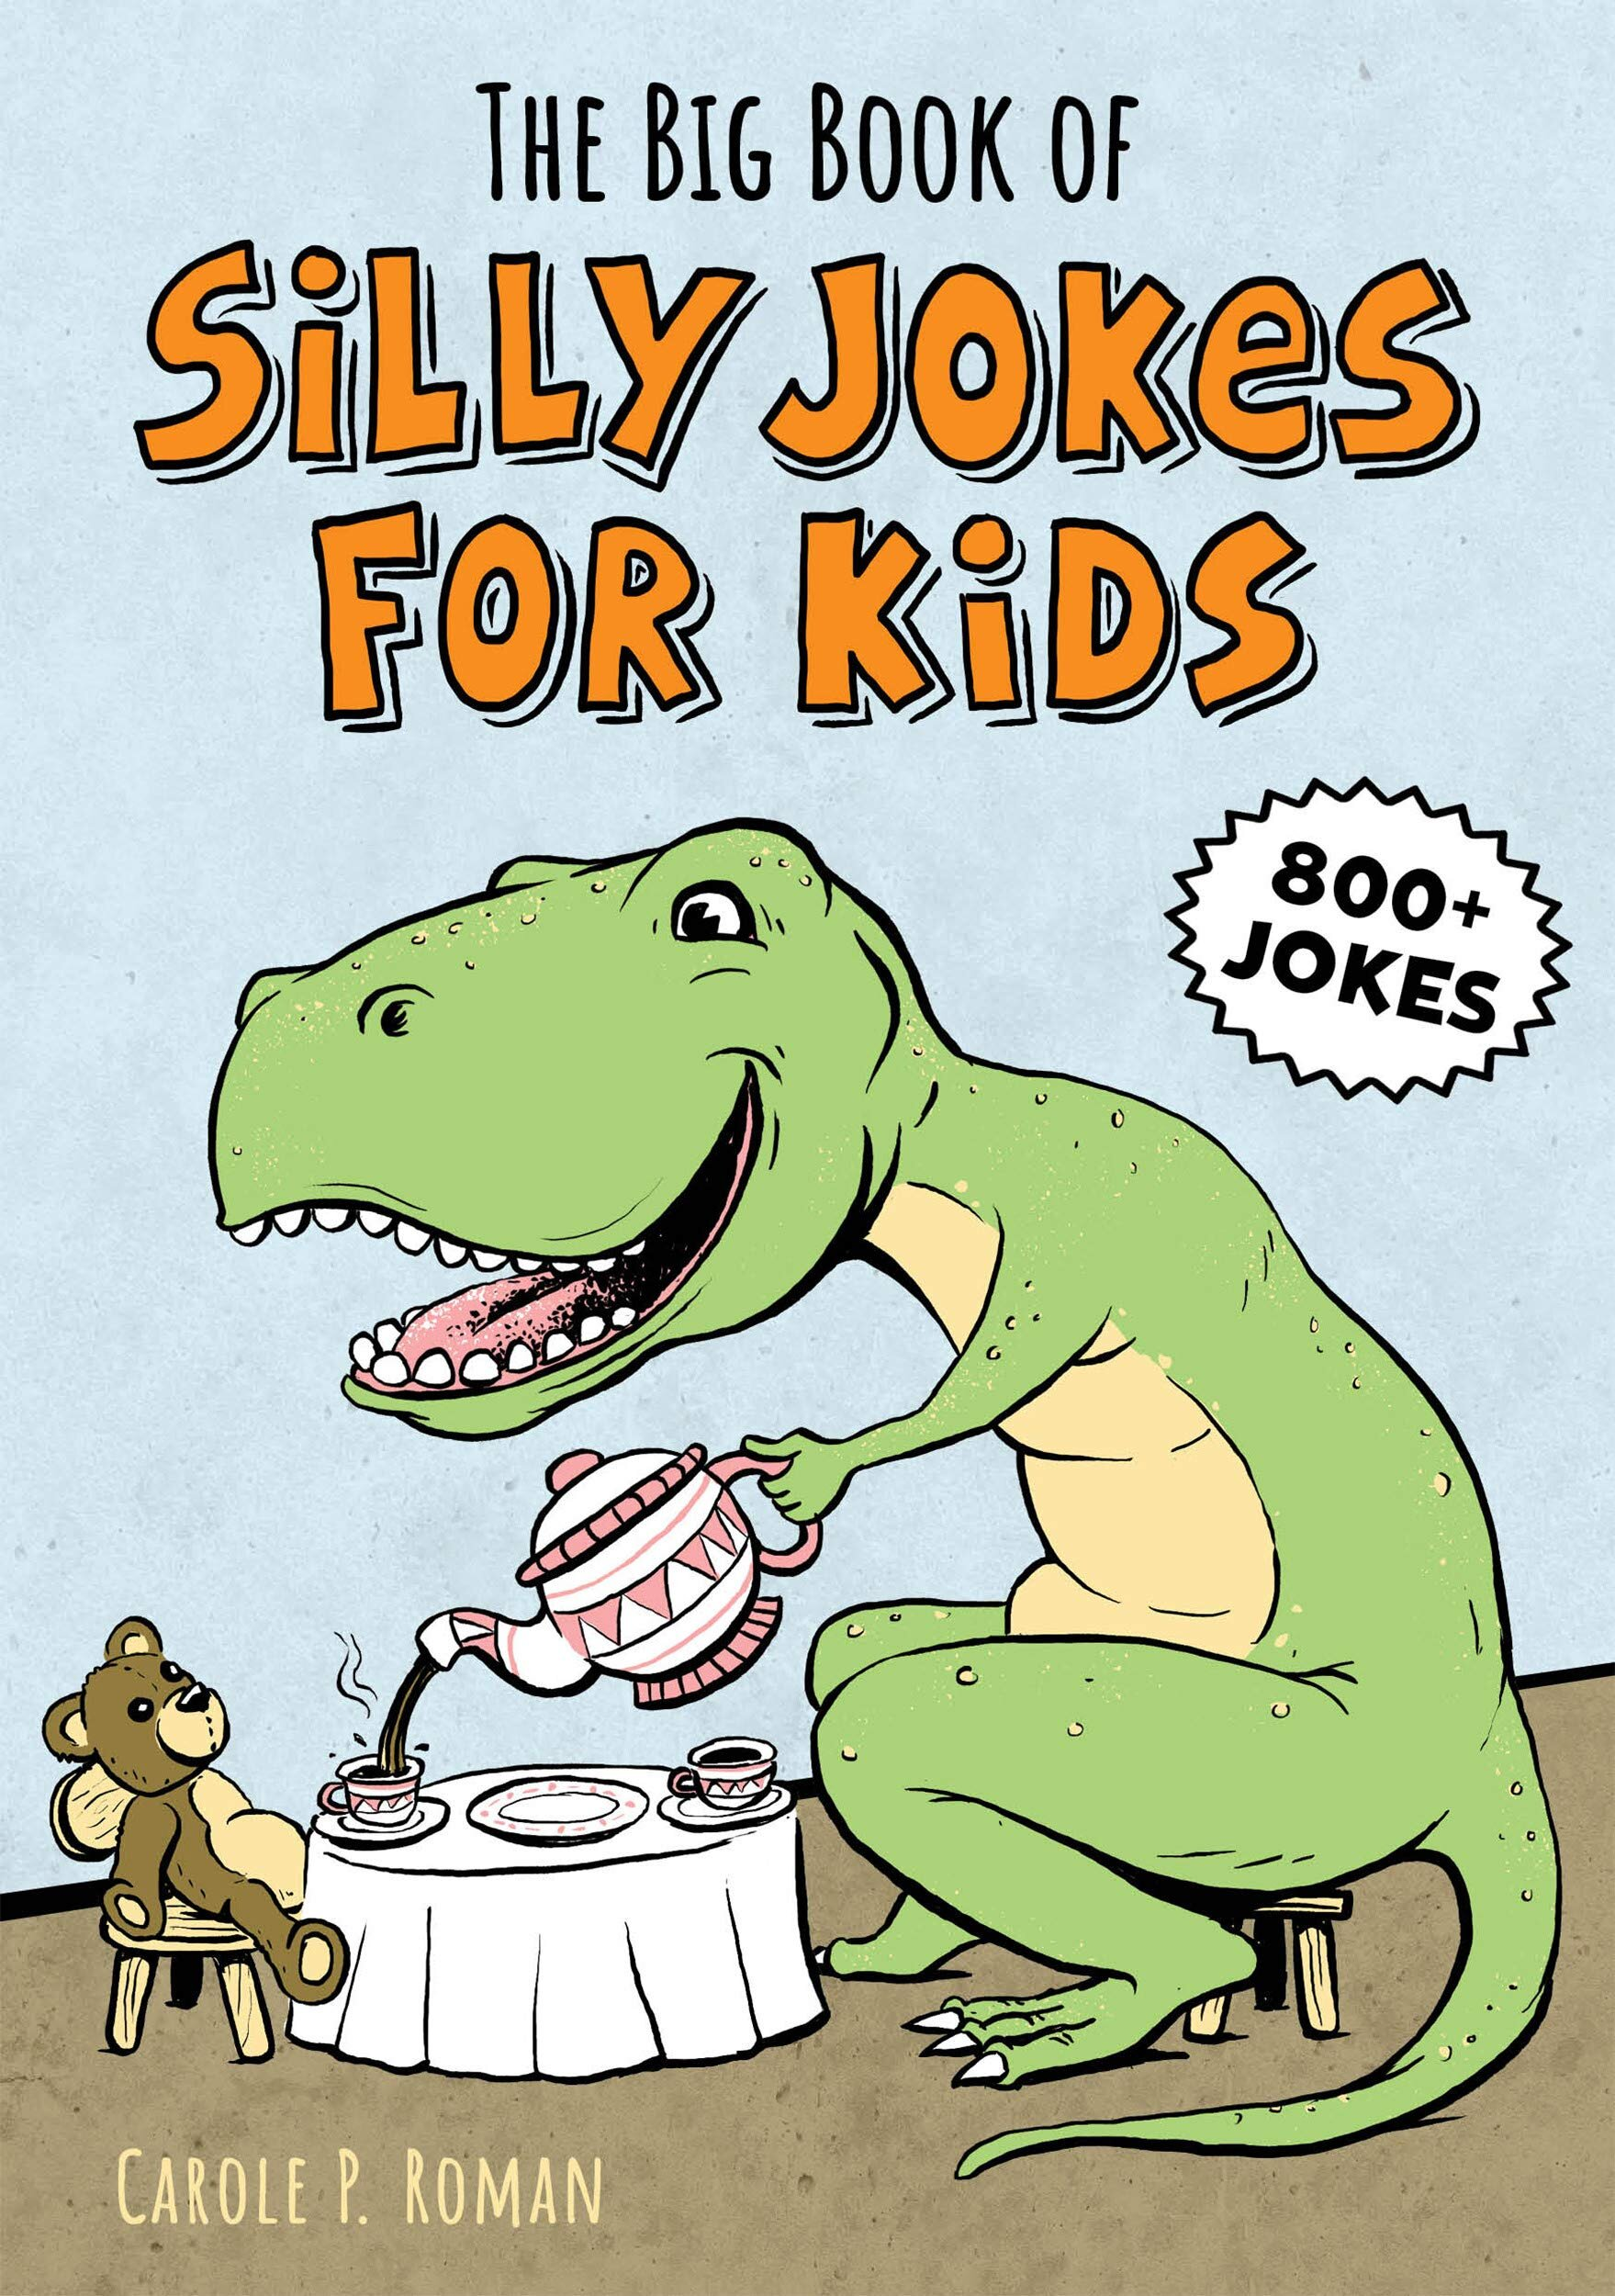 The Big Book of Silly Jokes for Kids.jpg